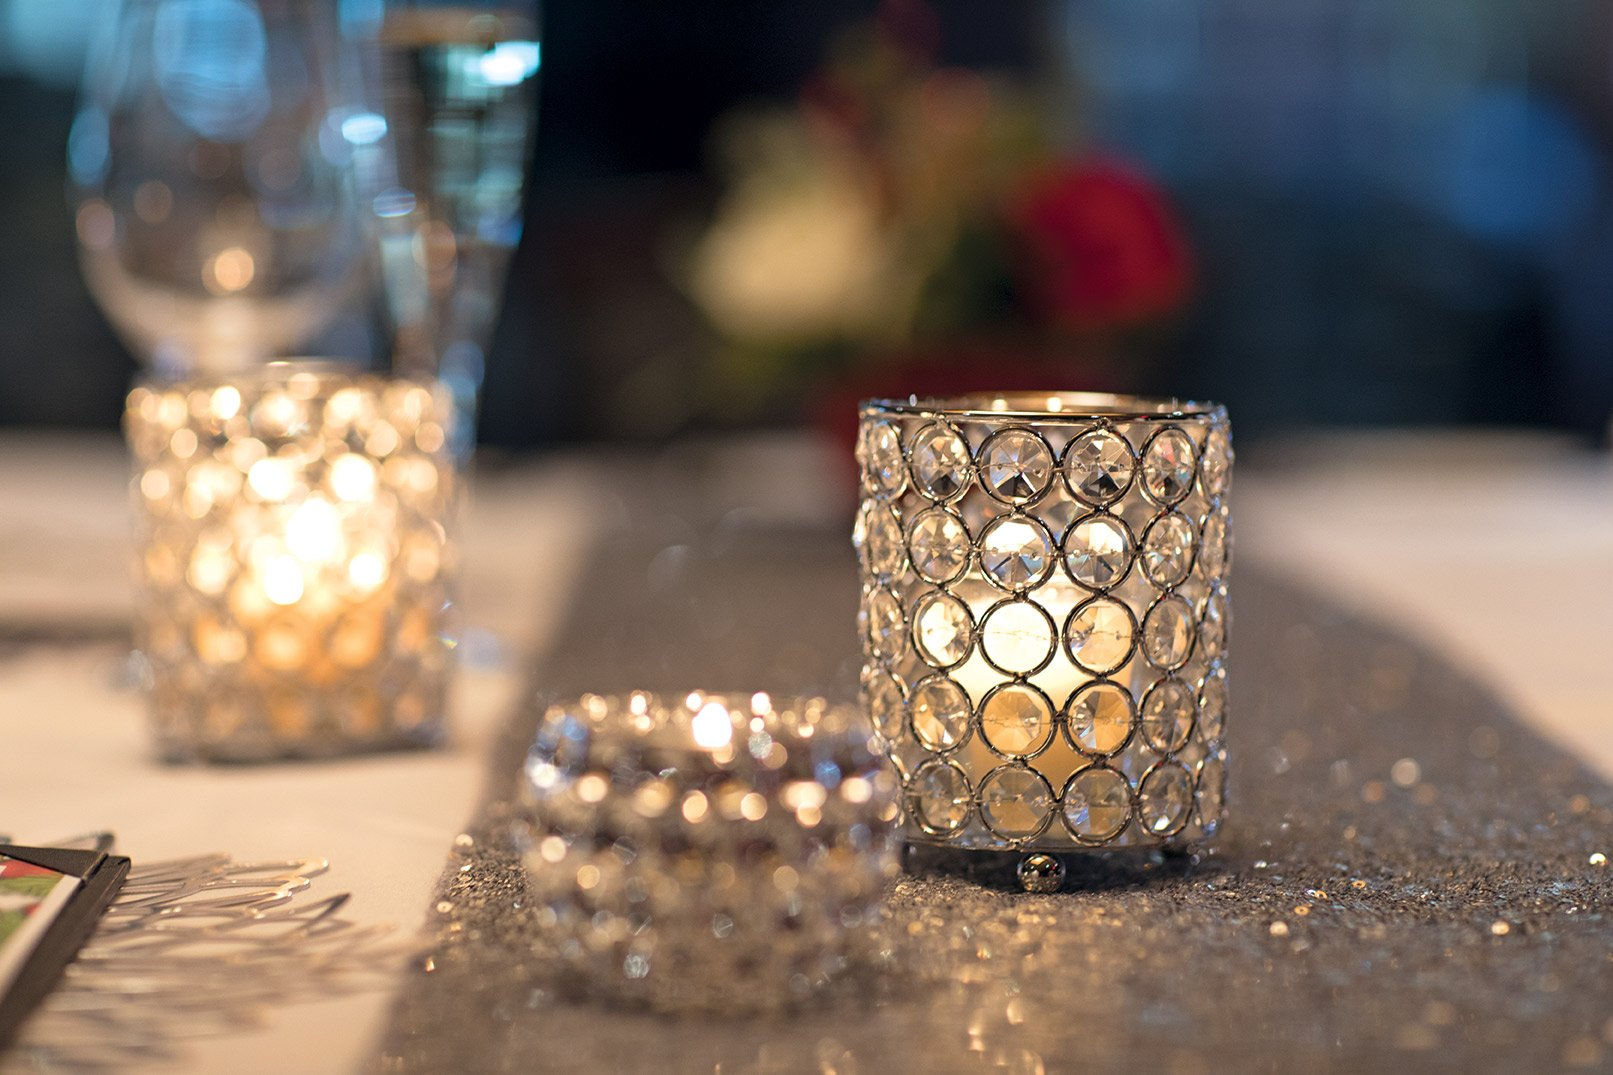 Private dining holiday decorations - crystal candles with a silver table runner